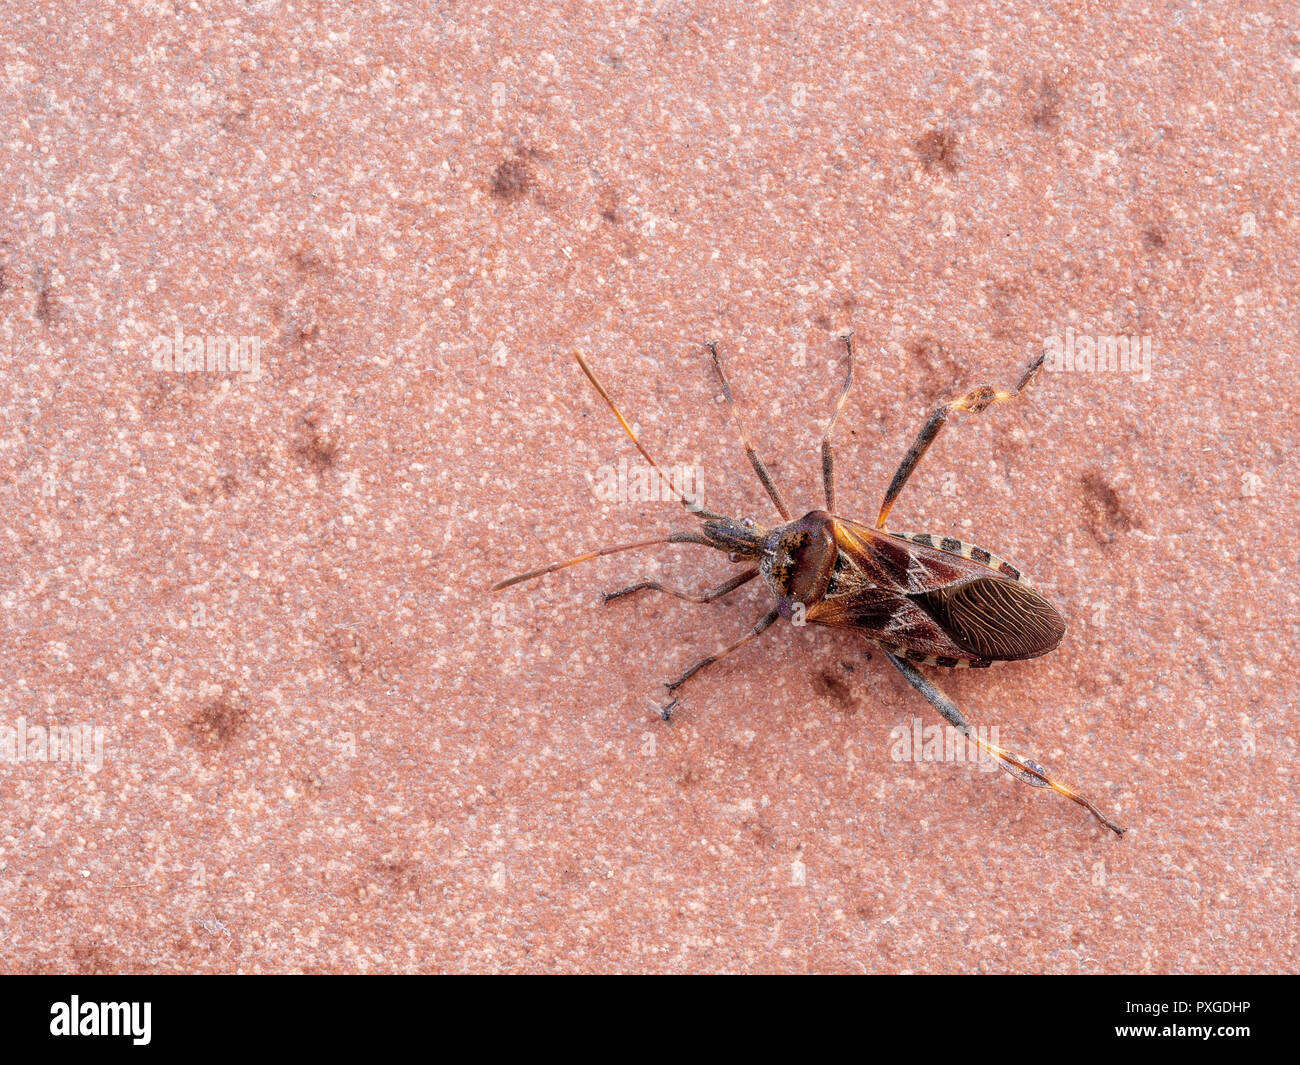 Insect pest, Western conifer seed bug, Leptoglossus occidentalis, sometimes abbreviated as WCSB. - Stock Image